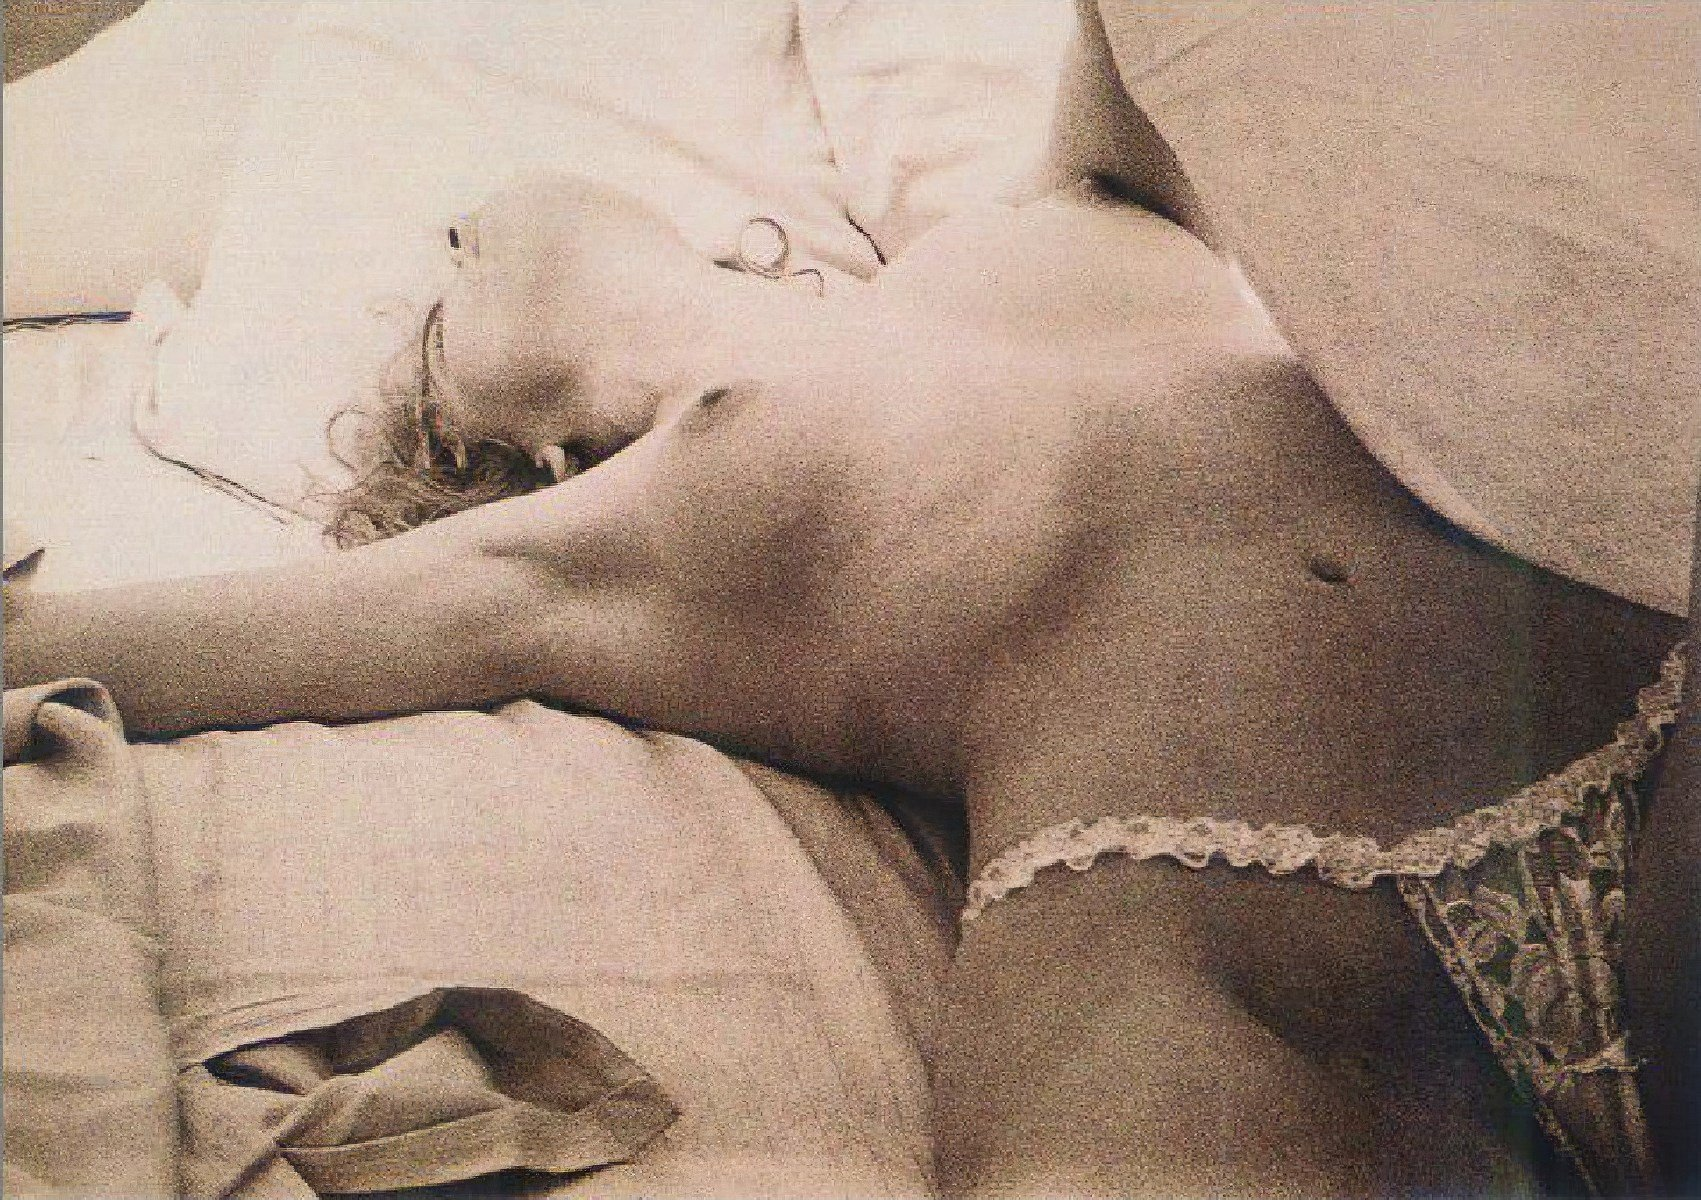 A Young Sharon Stone Nude